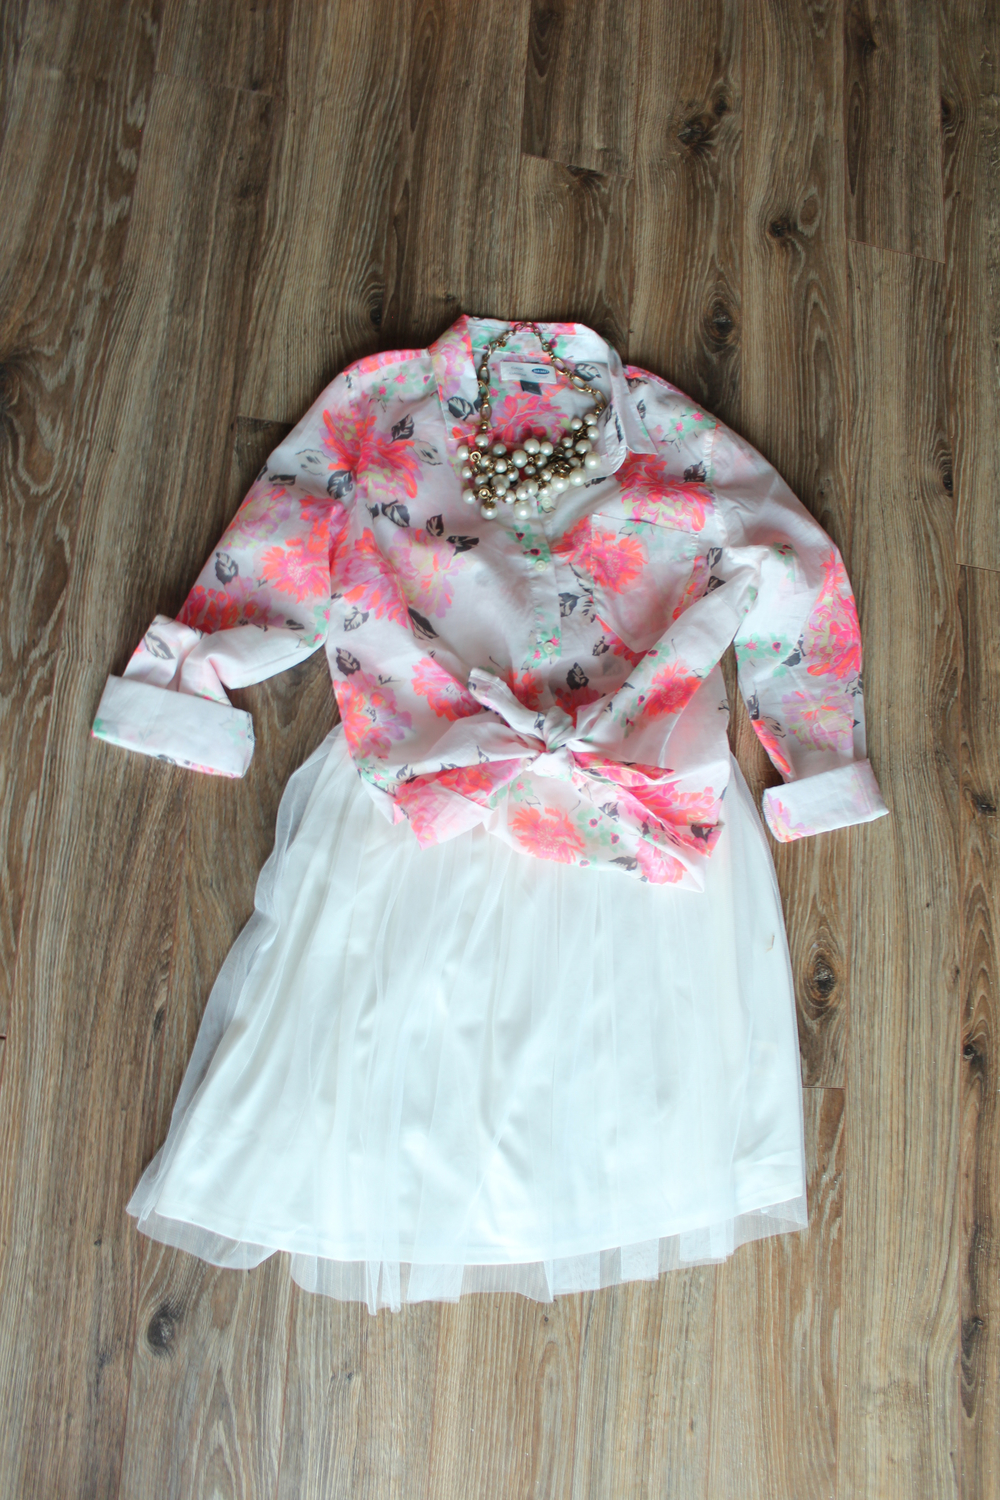 Daphne Pearl | Floral Shirt (Sold Out) | Tutu Dress